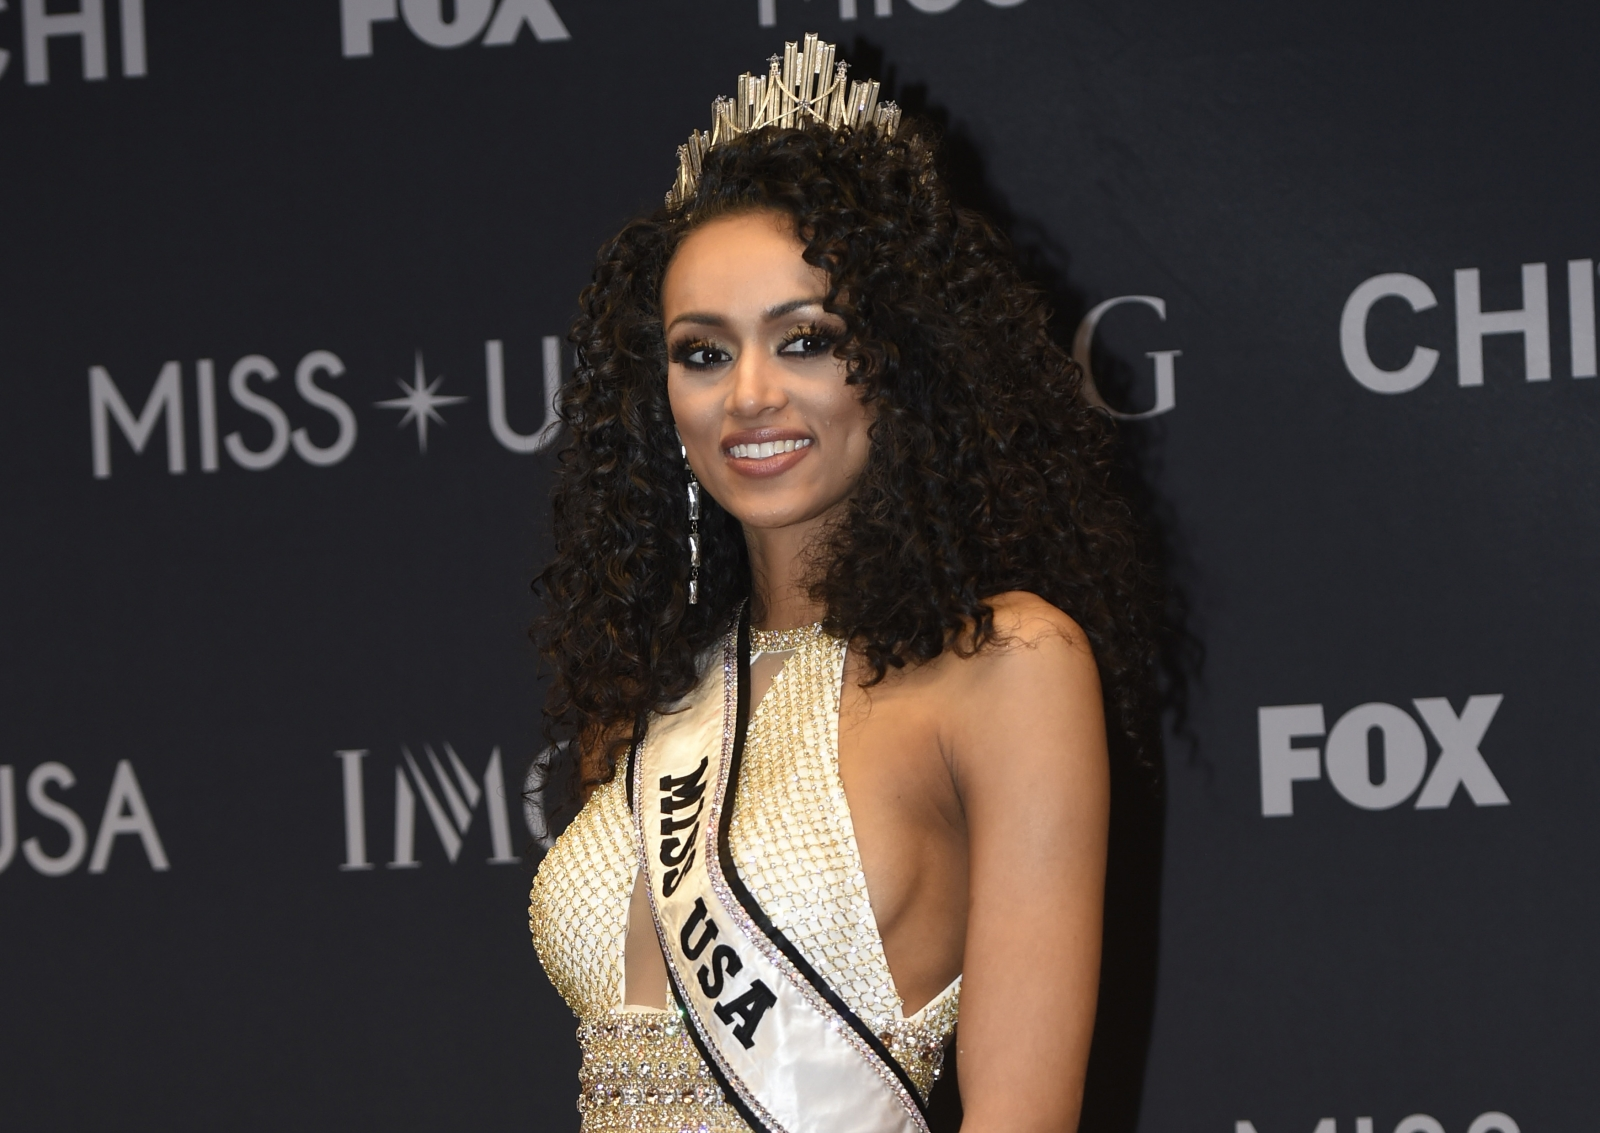 Miss Universo 2019 >> Miss USA 2017 winner Kara McCullough slammed for comments on 'man-hating' feminism